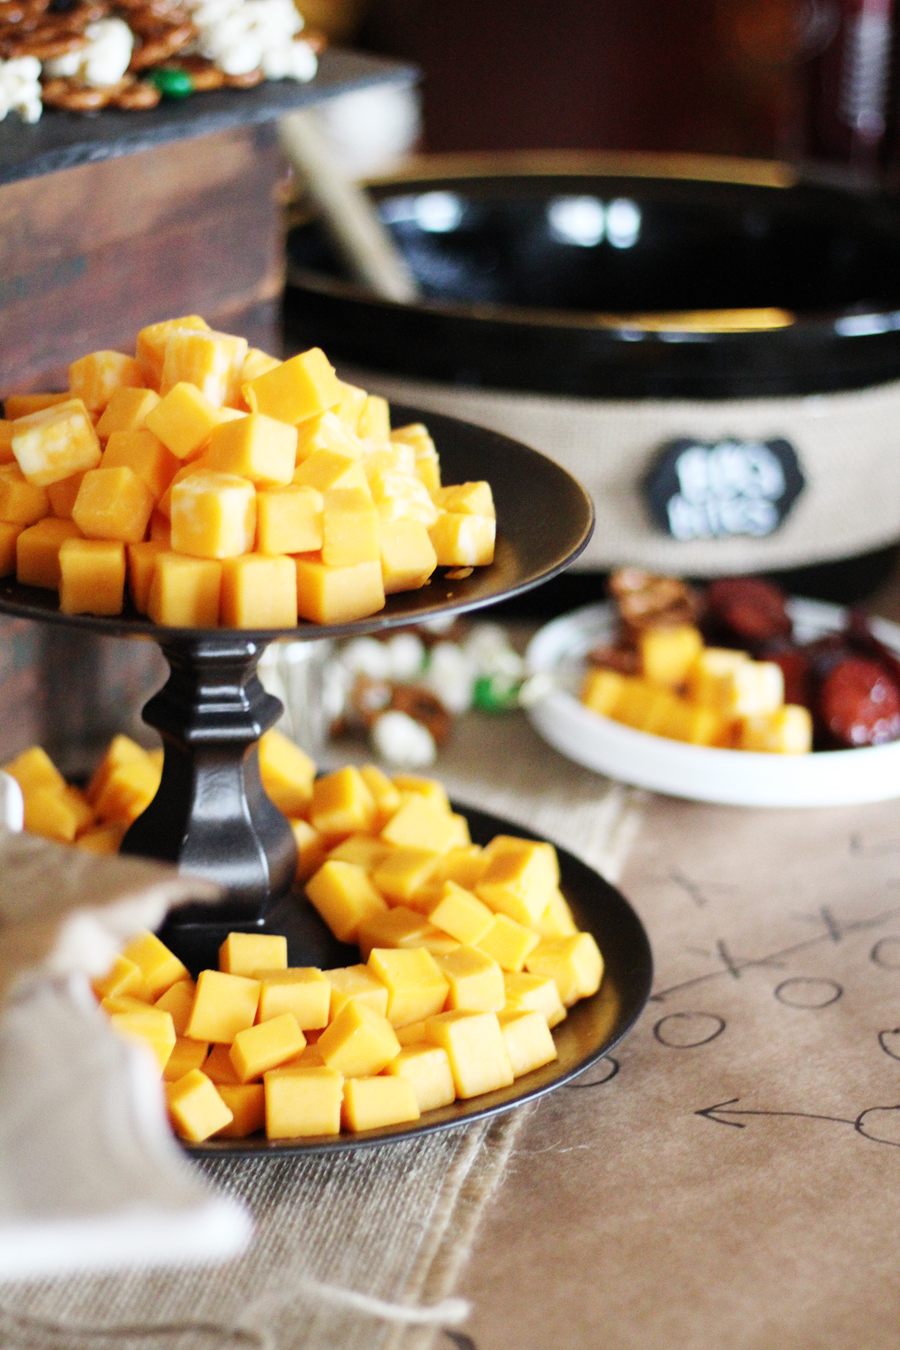 A platter of cheddar cheese cubes with a crockpot in the background